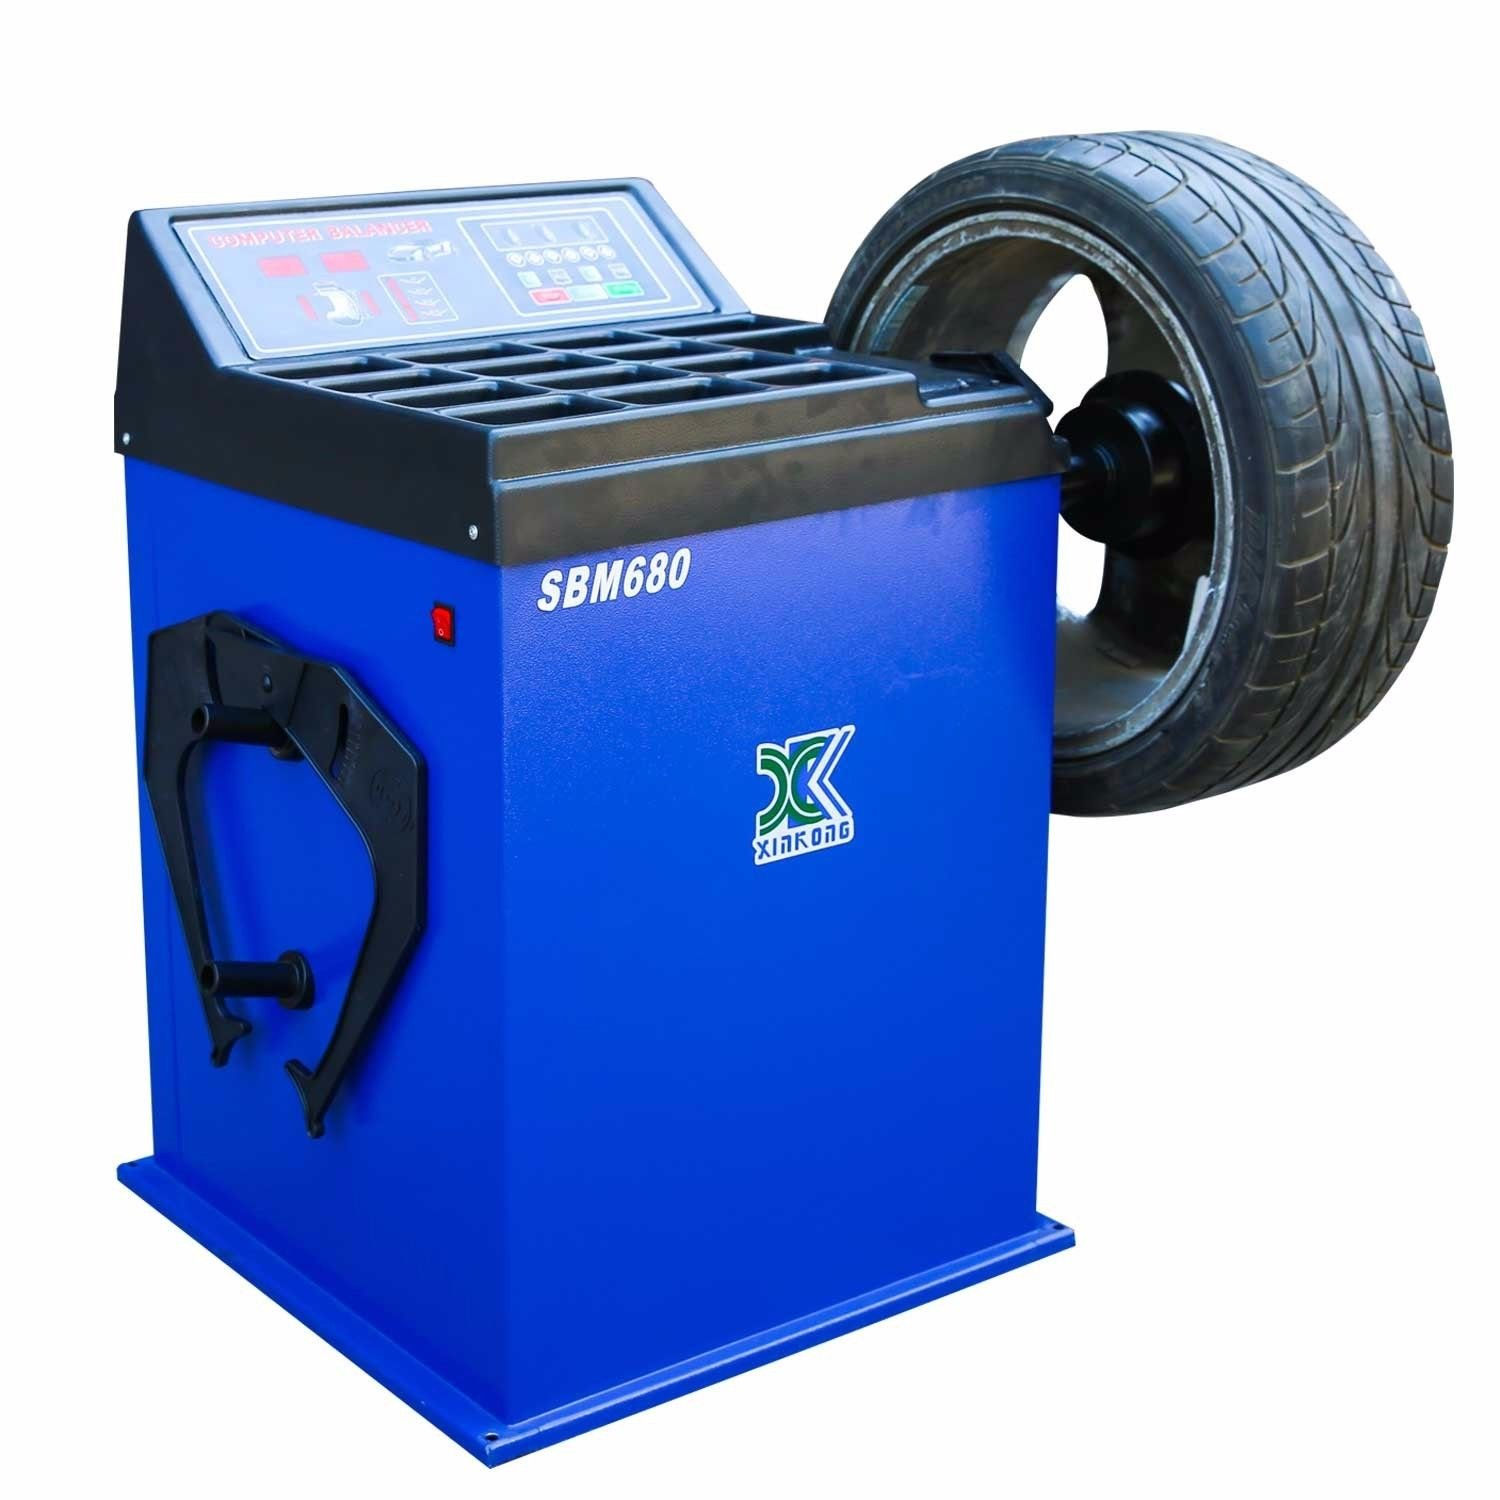 CHIEN RONG 1.5 HP Automatic Tire Changer Wheel Changers Machine Rim Balancer Combo 960 680//12 Month Warranty